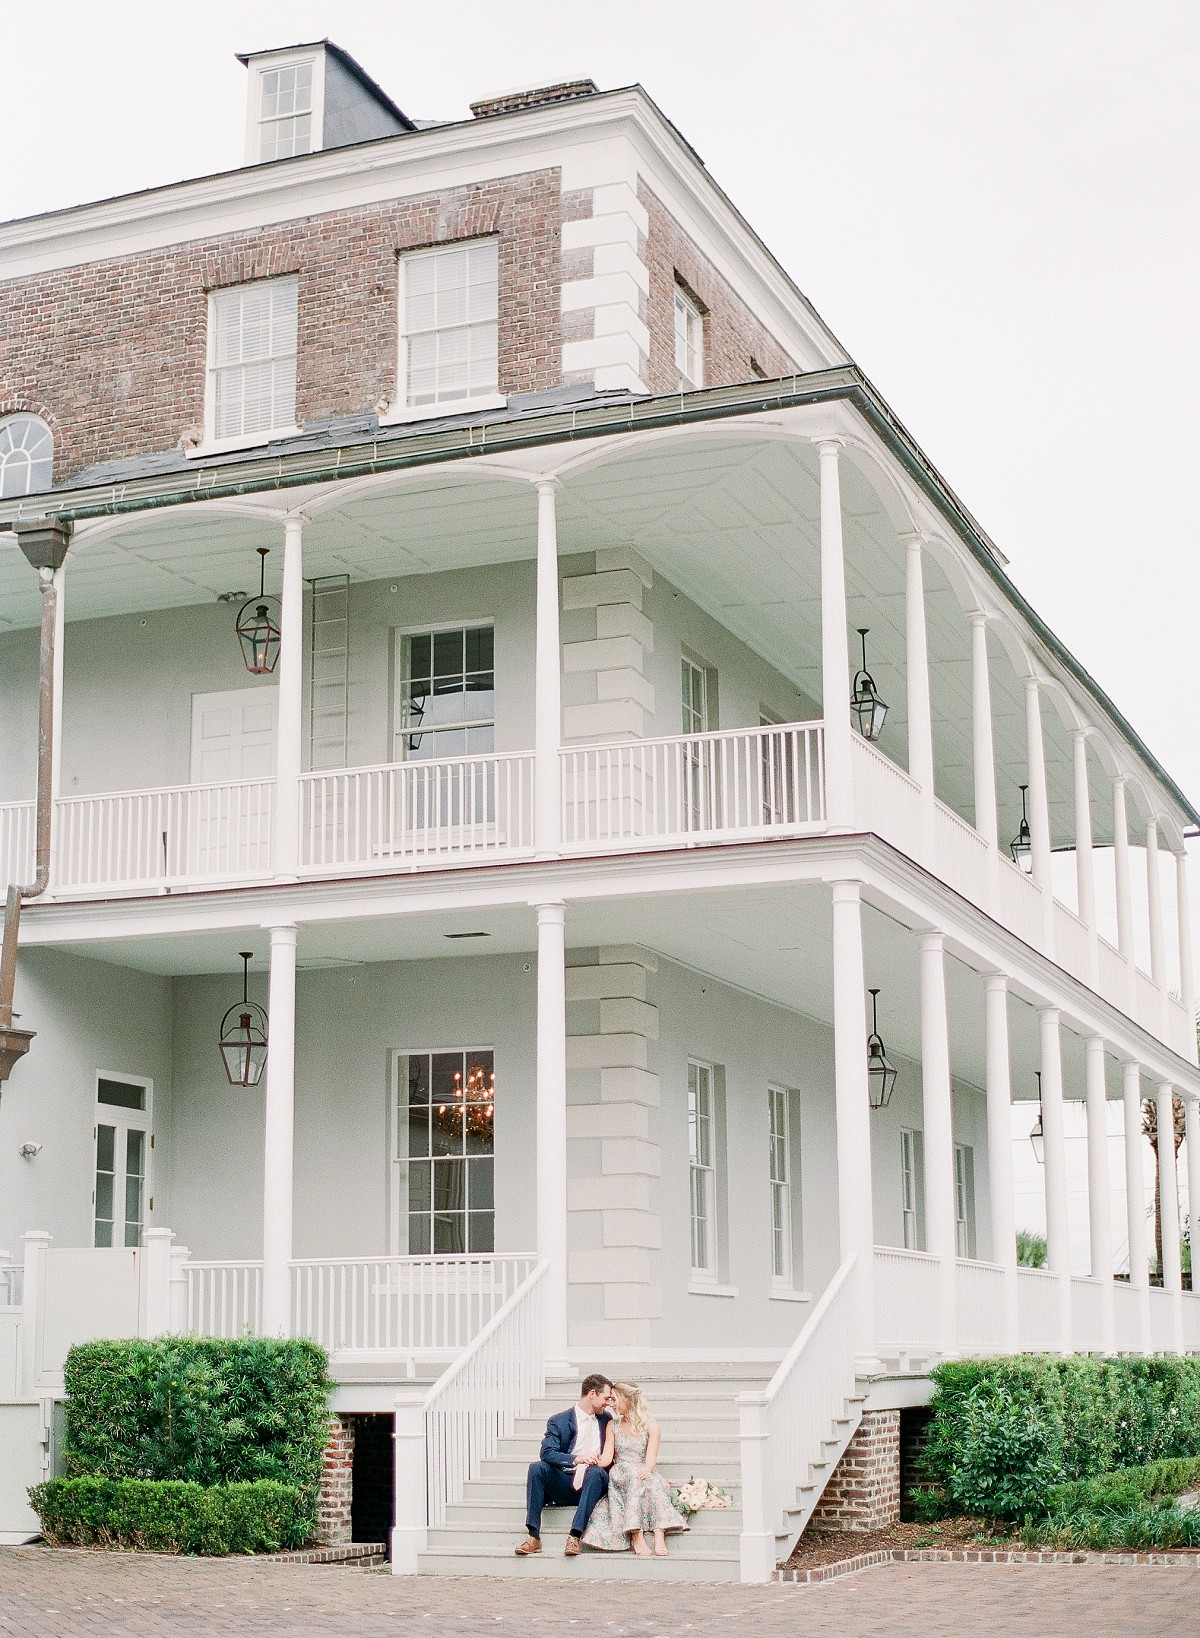 Engagement Session at the Gadsden House, Charleston